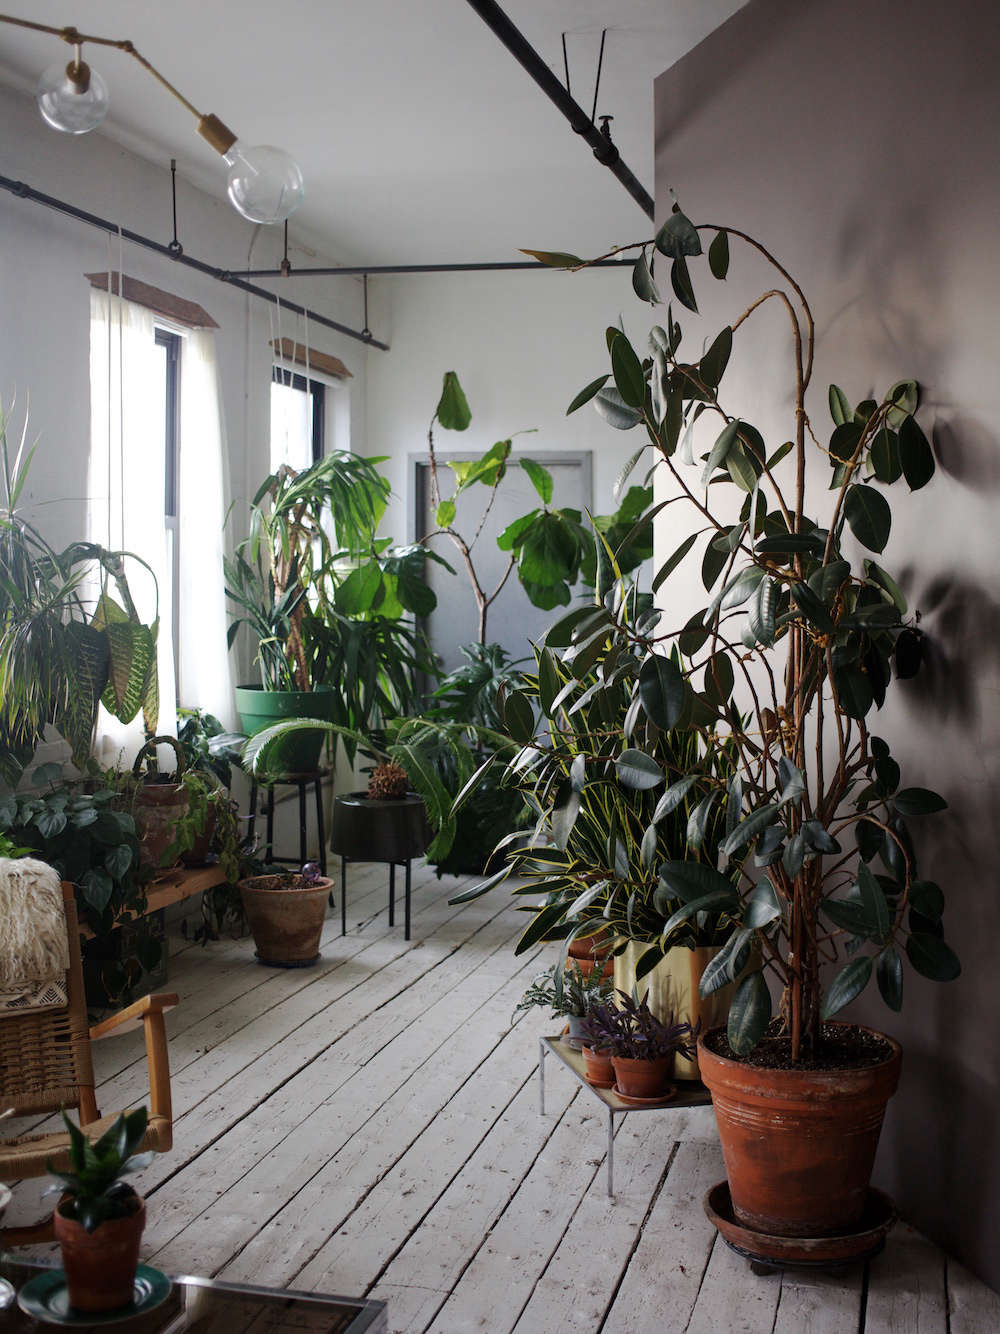 the accidental jungle: shabd simon-alexander's houseplants in a